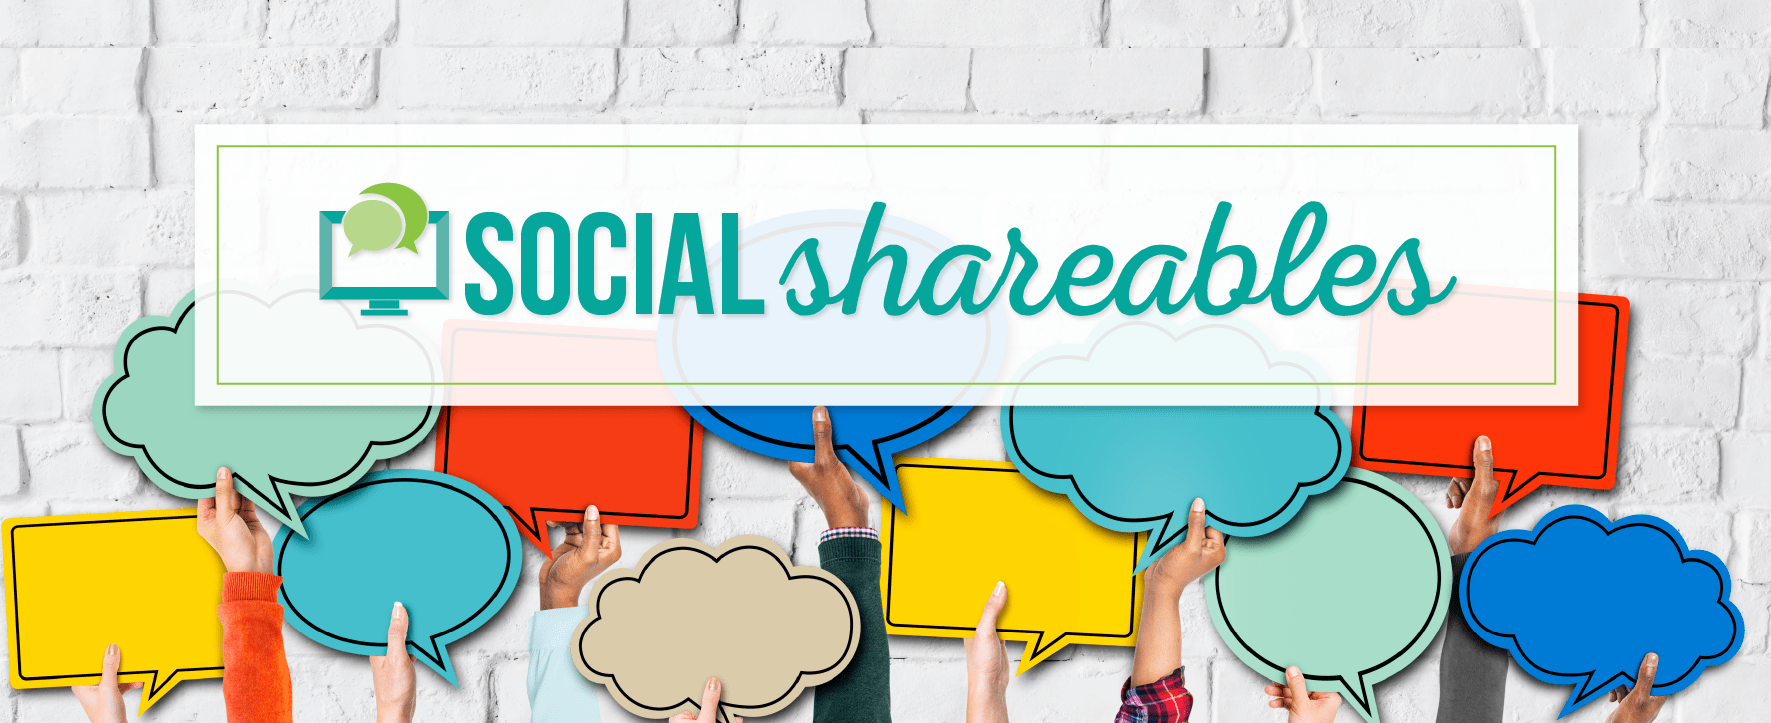 Social Shareables by Caffeinated Communications Studio